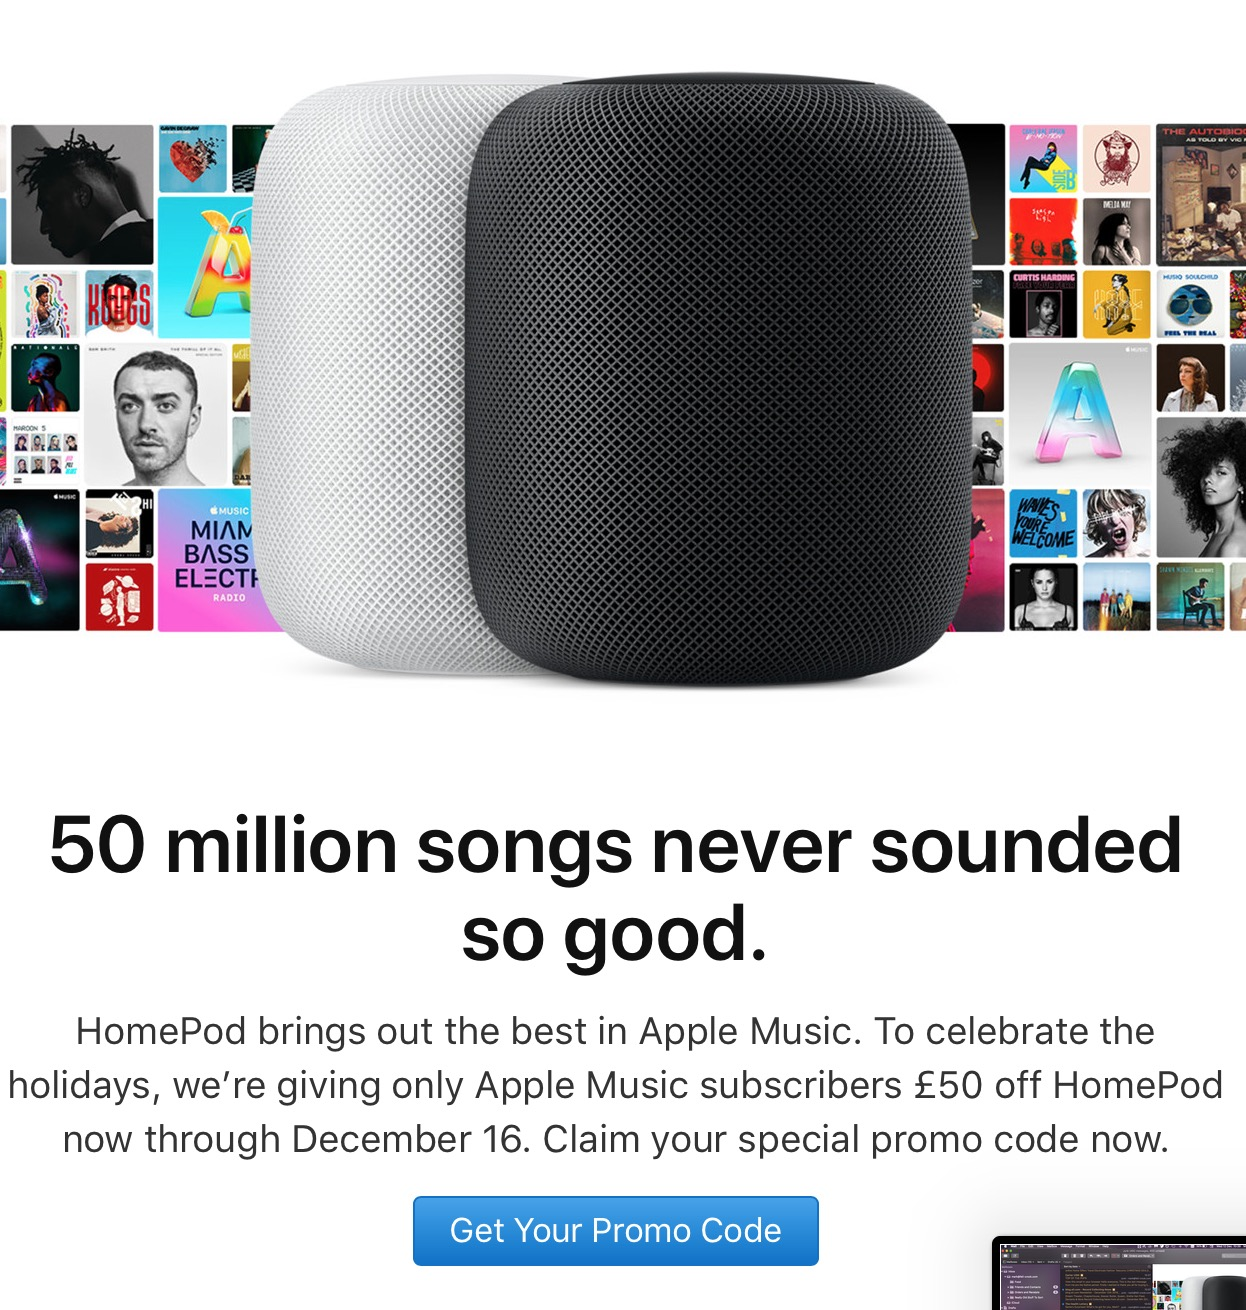 Apple U.K. Now Offering Discounts on HomePod to Apple Music Subscribers